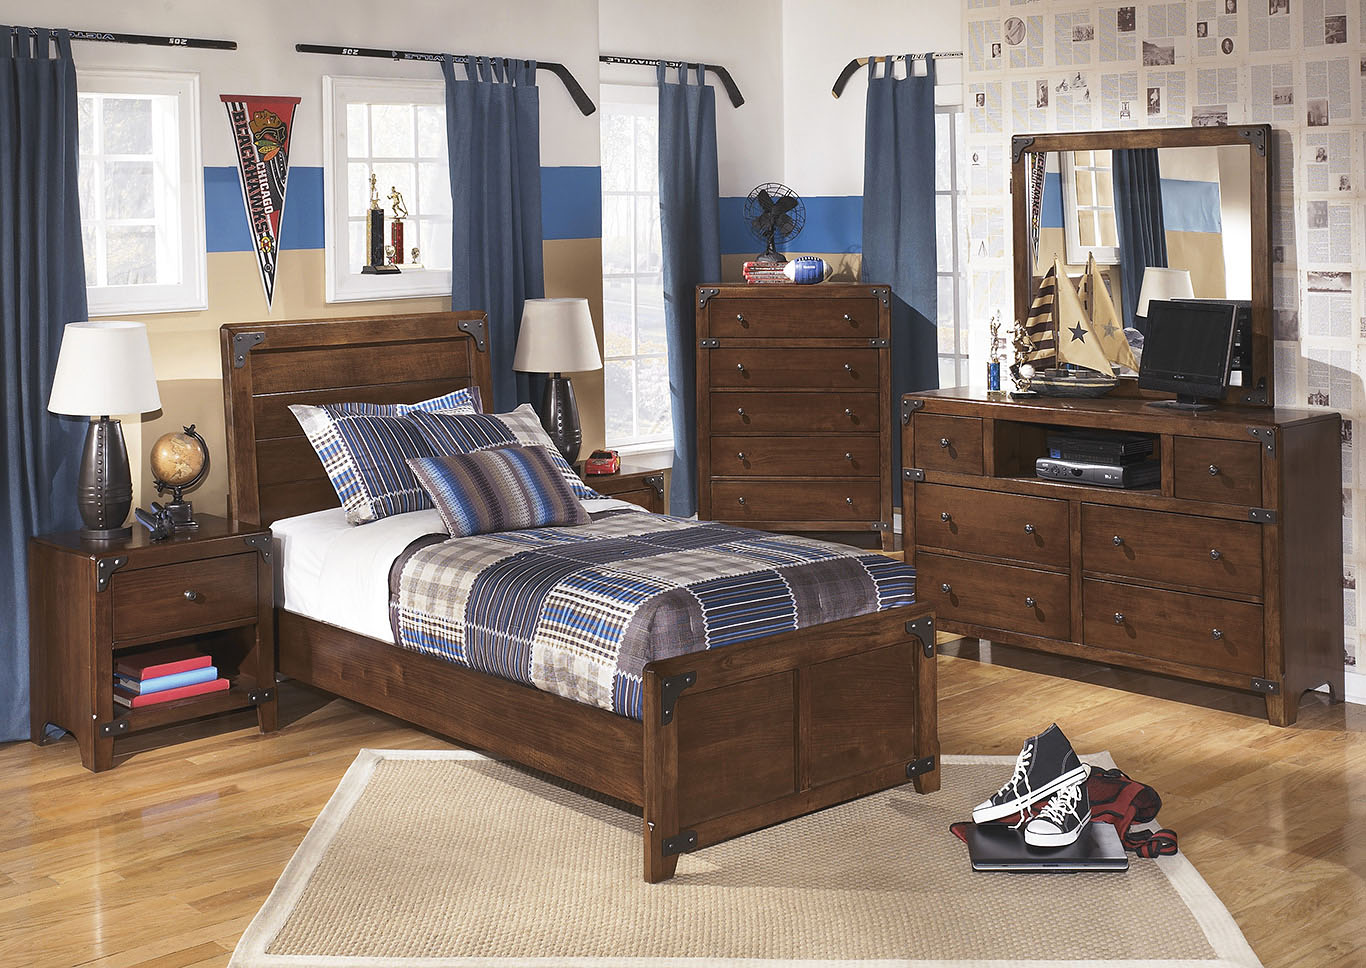 Delburne Twin Panel Bed w/Dresser & Mirror,Signature Design By Ashley